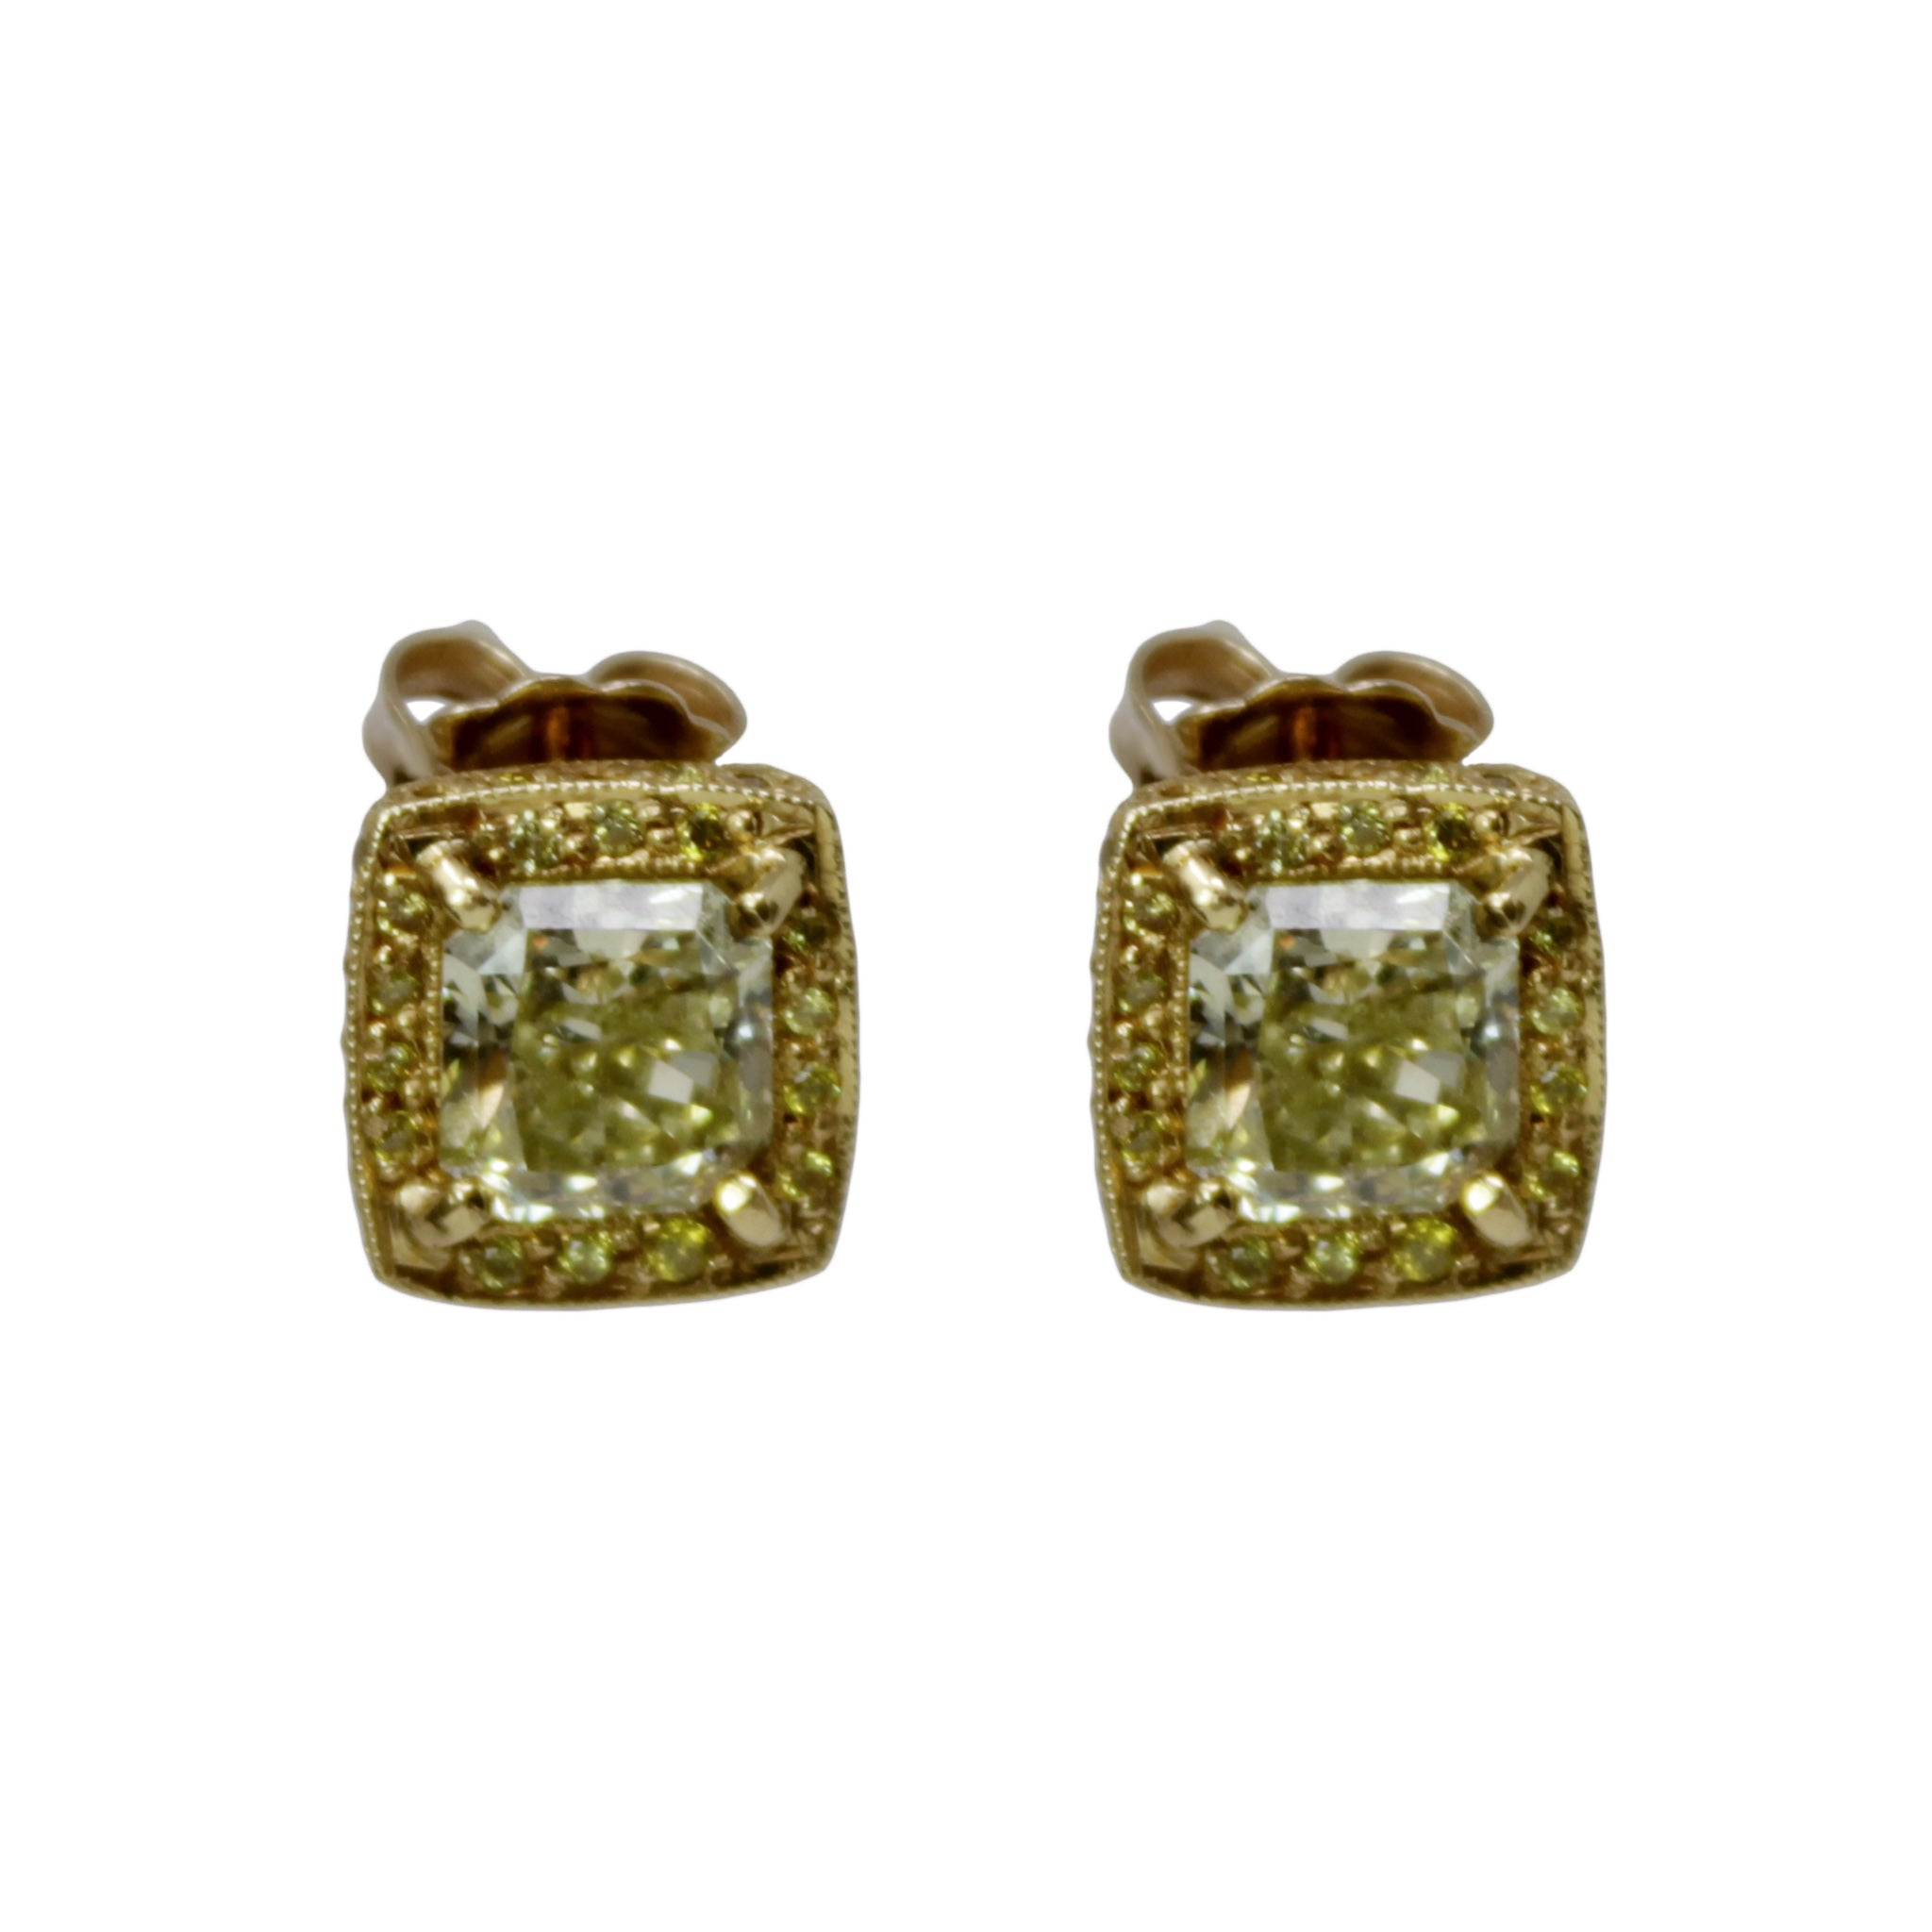 Yellow Radiant Diamond Stud Earrings - and Yellow Halo Diamond Setting 18k Yellow Gold